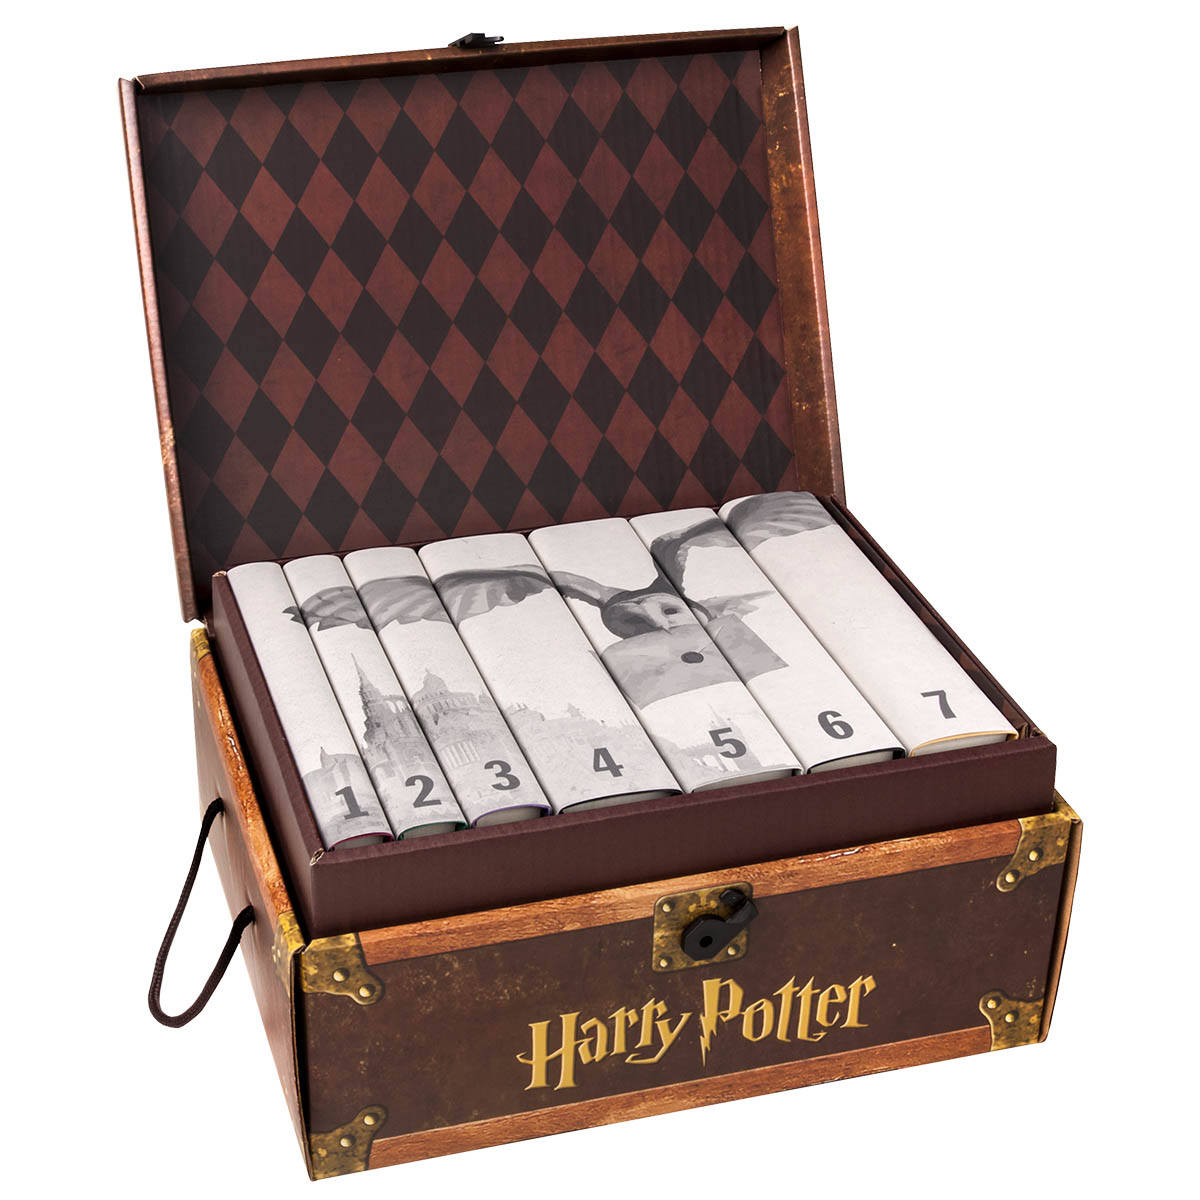 Harry Potter Hogwarts Set with Custom Flap Text